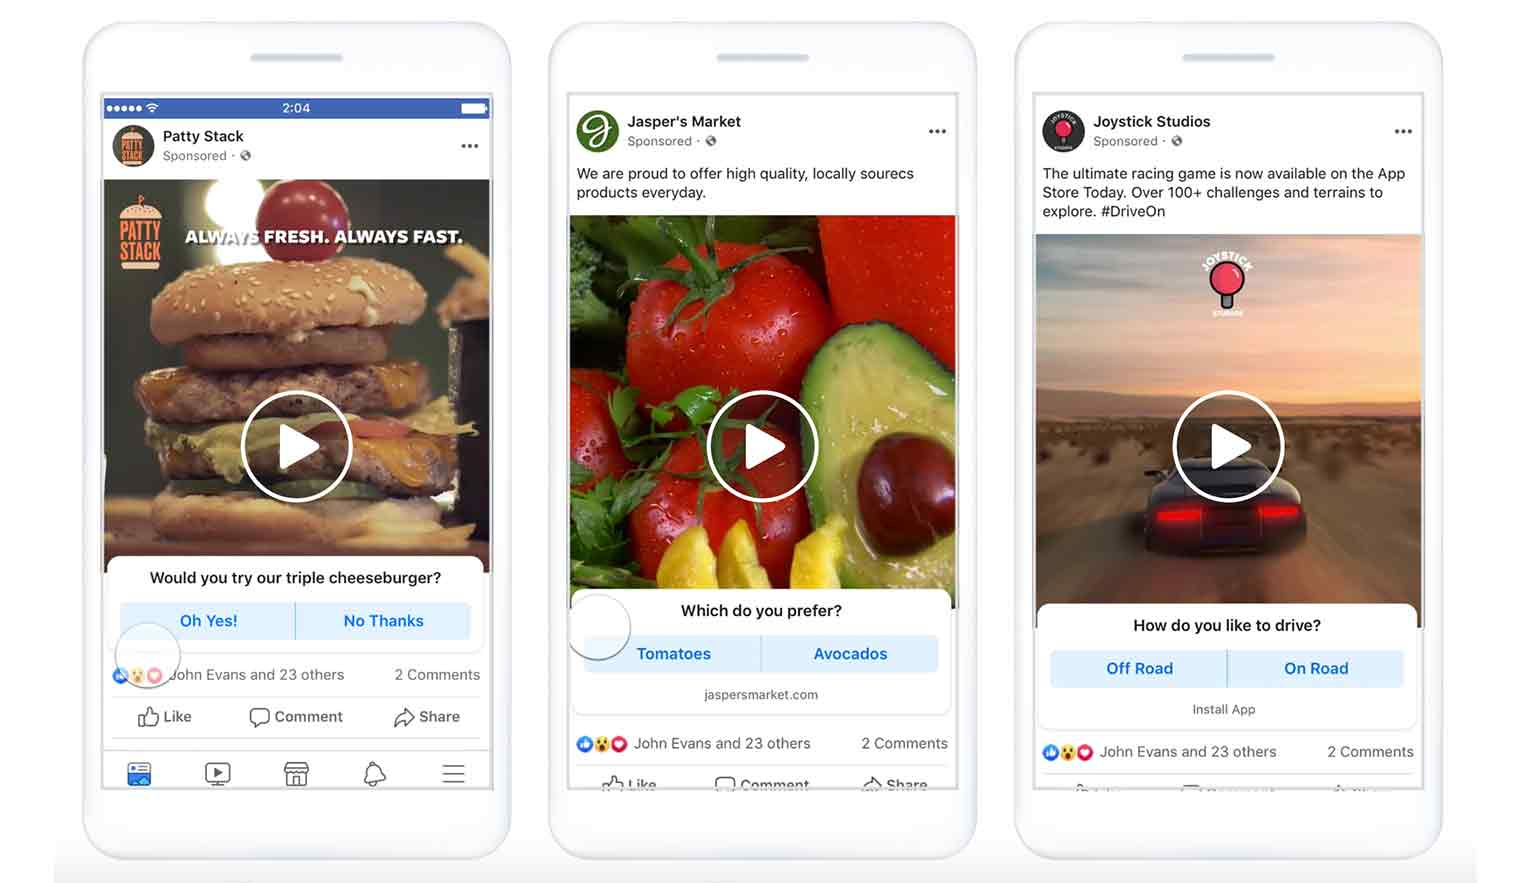 Video poll ads, only available on mobile, combines video with an interactive poll to drive engagement.